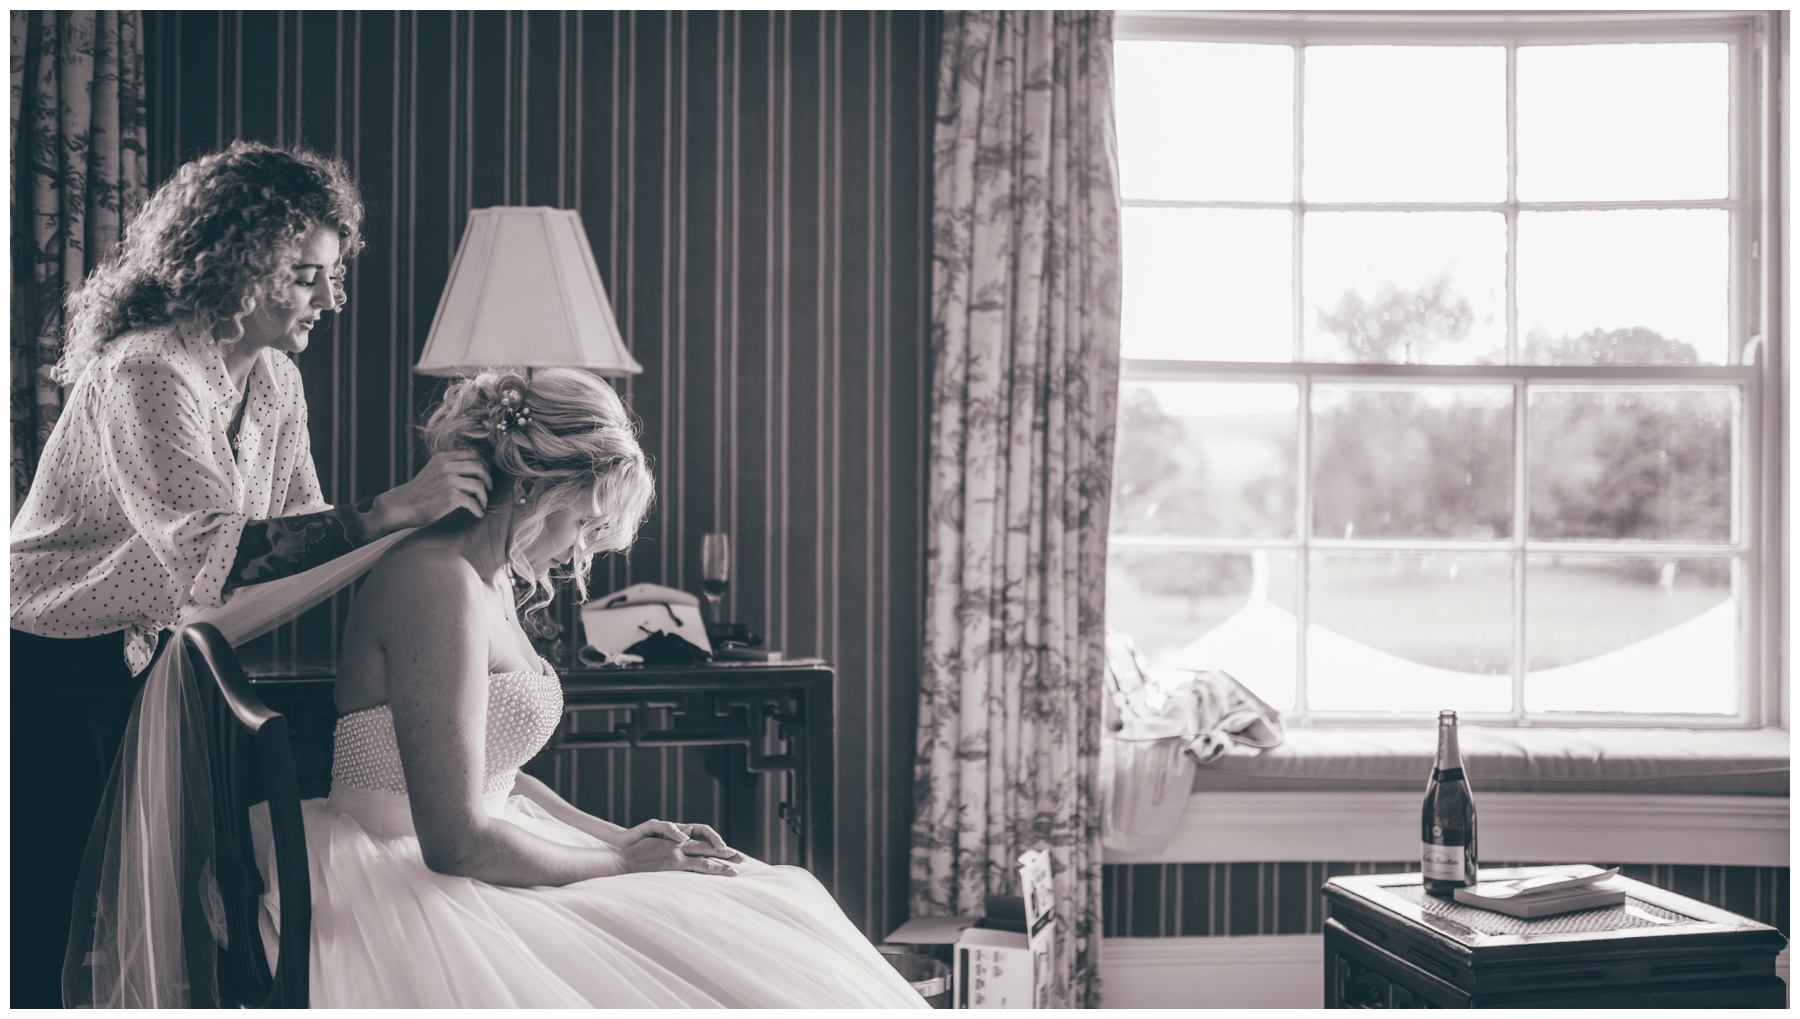 Wedding hairdresser puts the brides veil in and completes finishing touches on the beautiful bride at the Swinton Park Estate in Yorkshire.